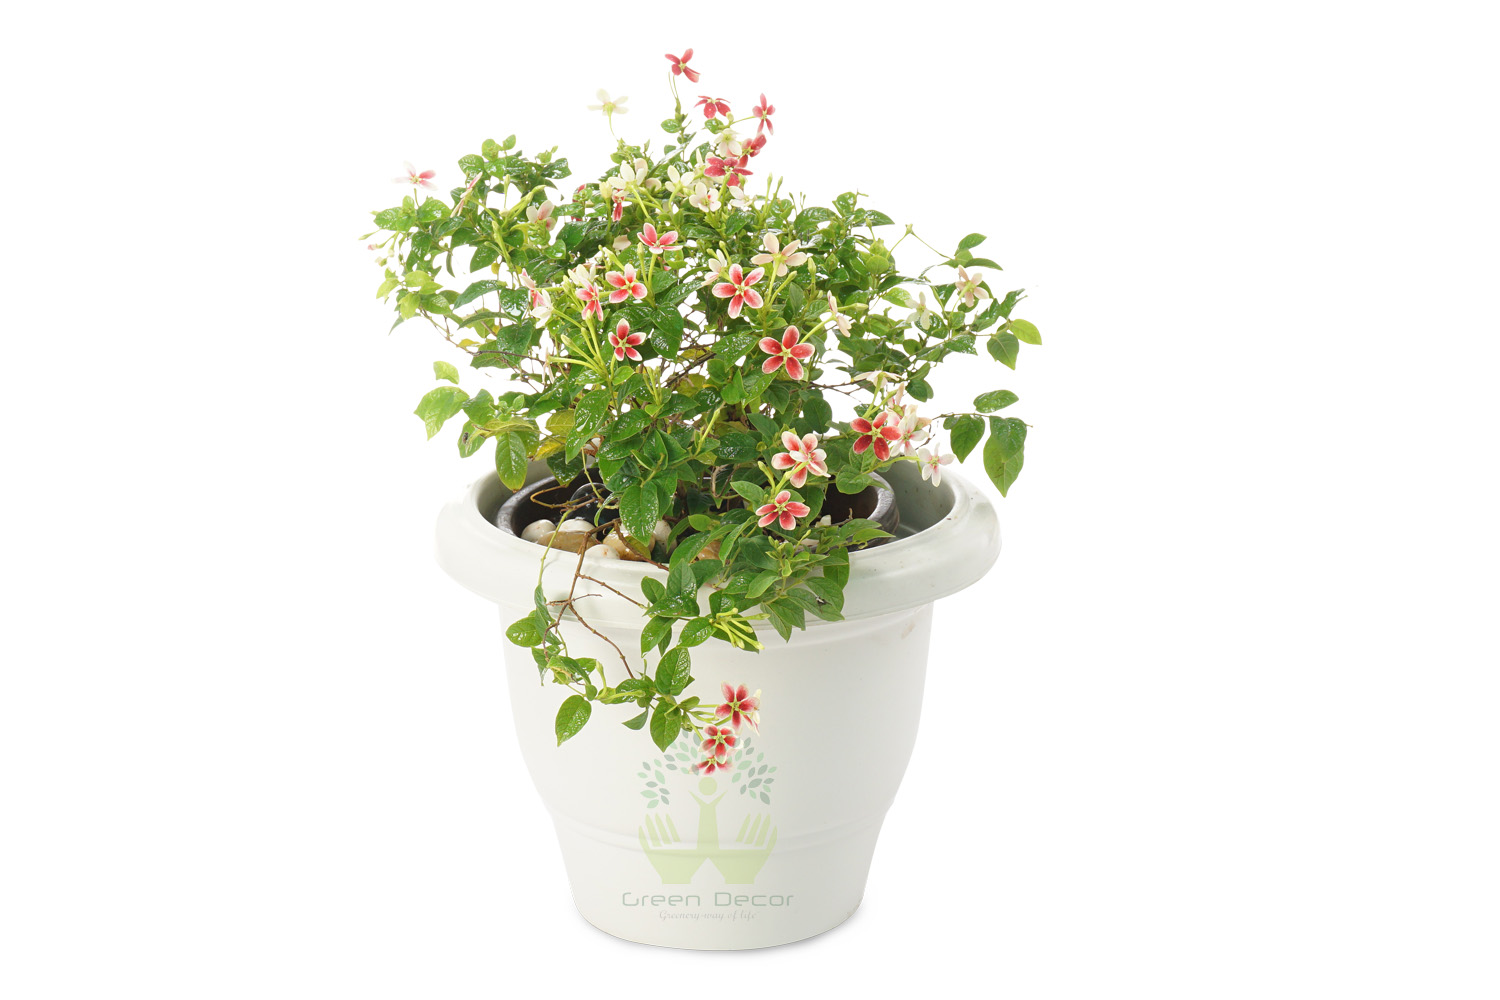 Buy Madhumalti Plants Front View , White Pots and seeds in Delhi NCR by the best online nursery shop Greendecor.